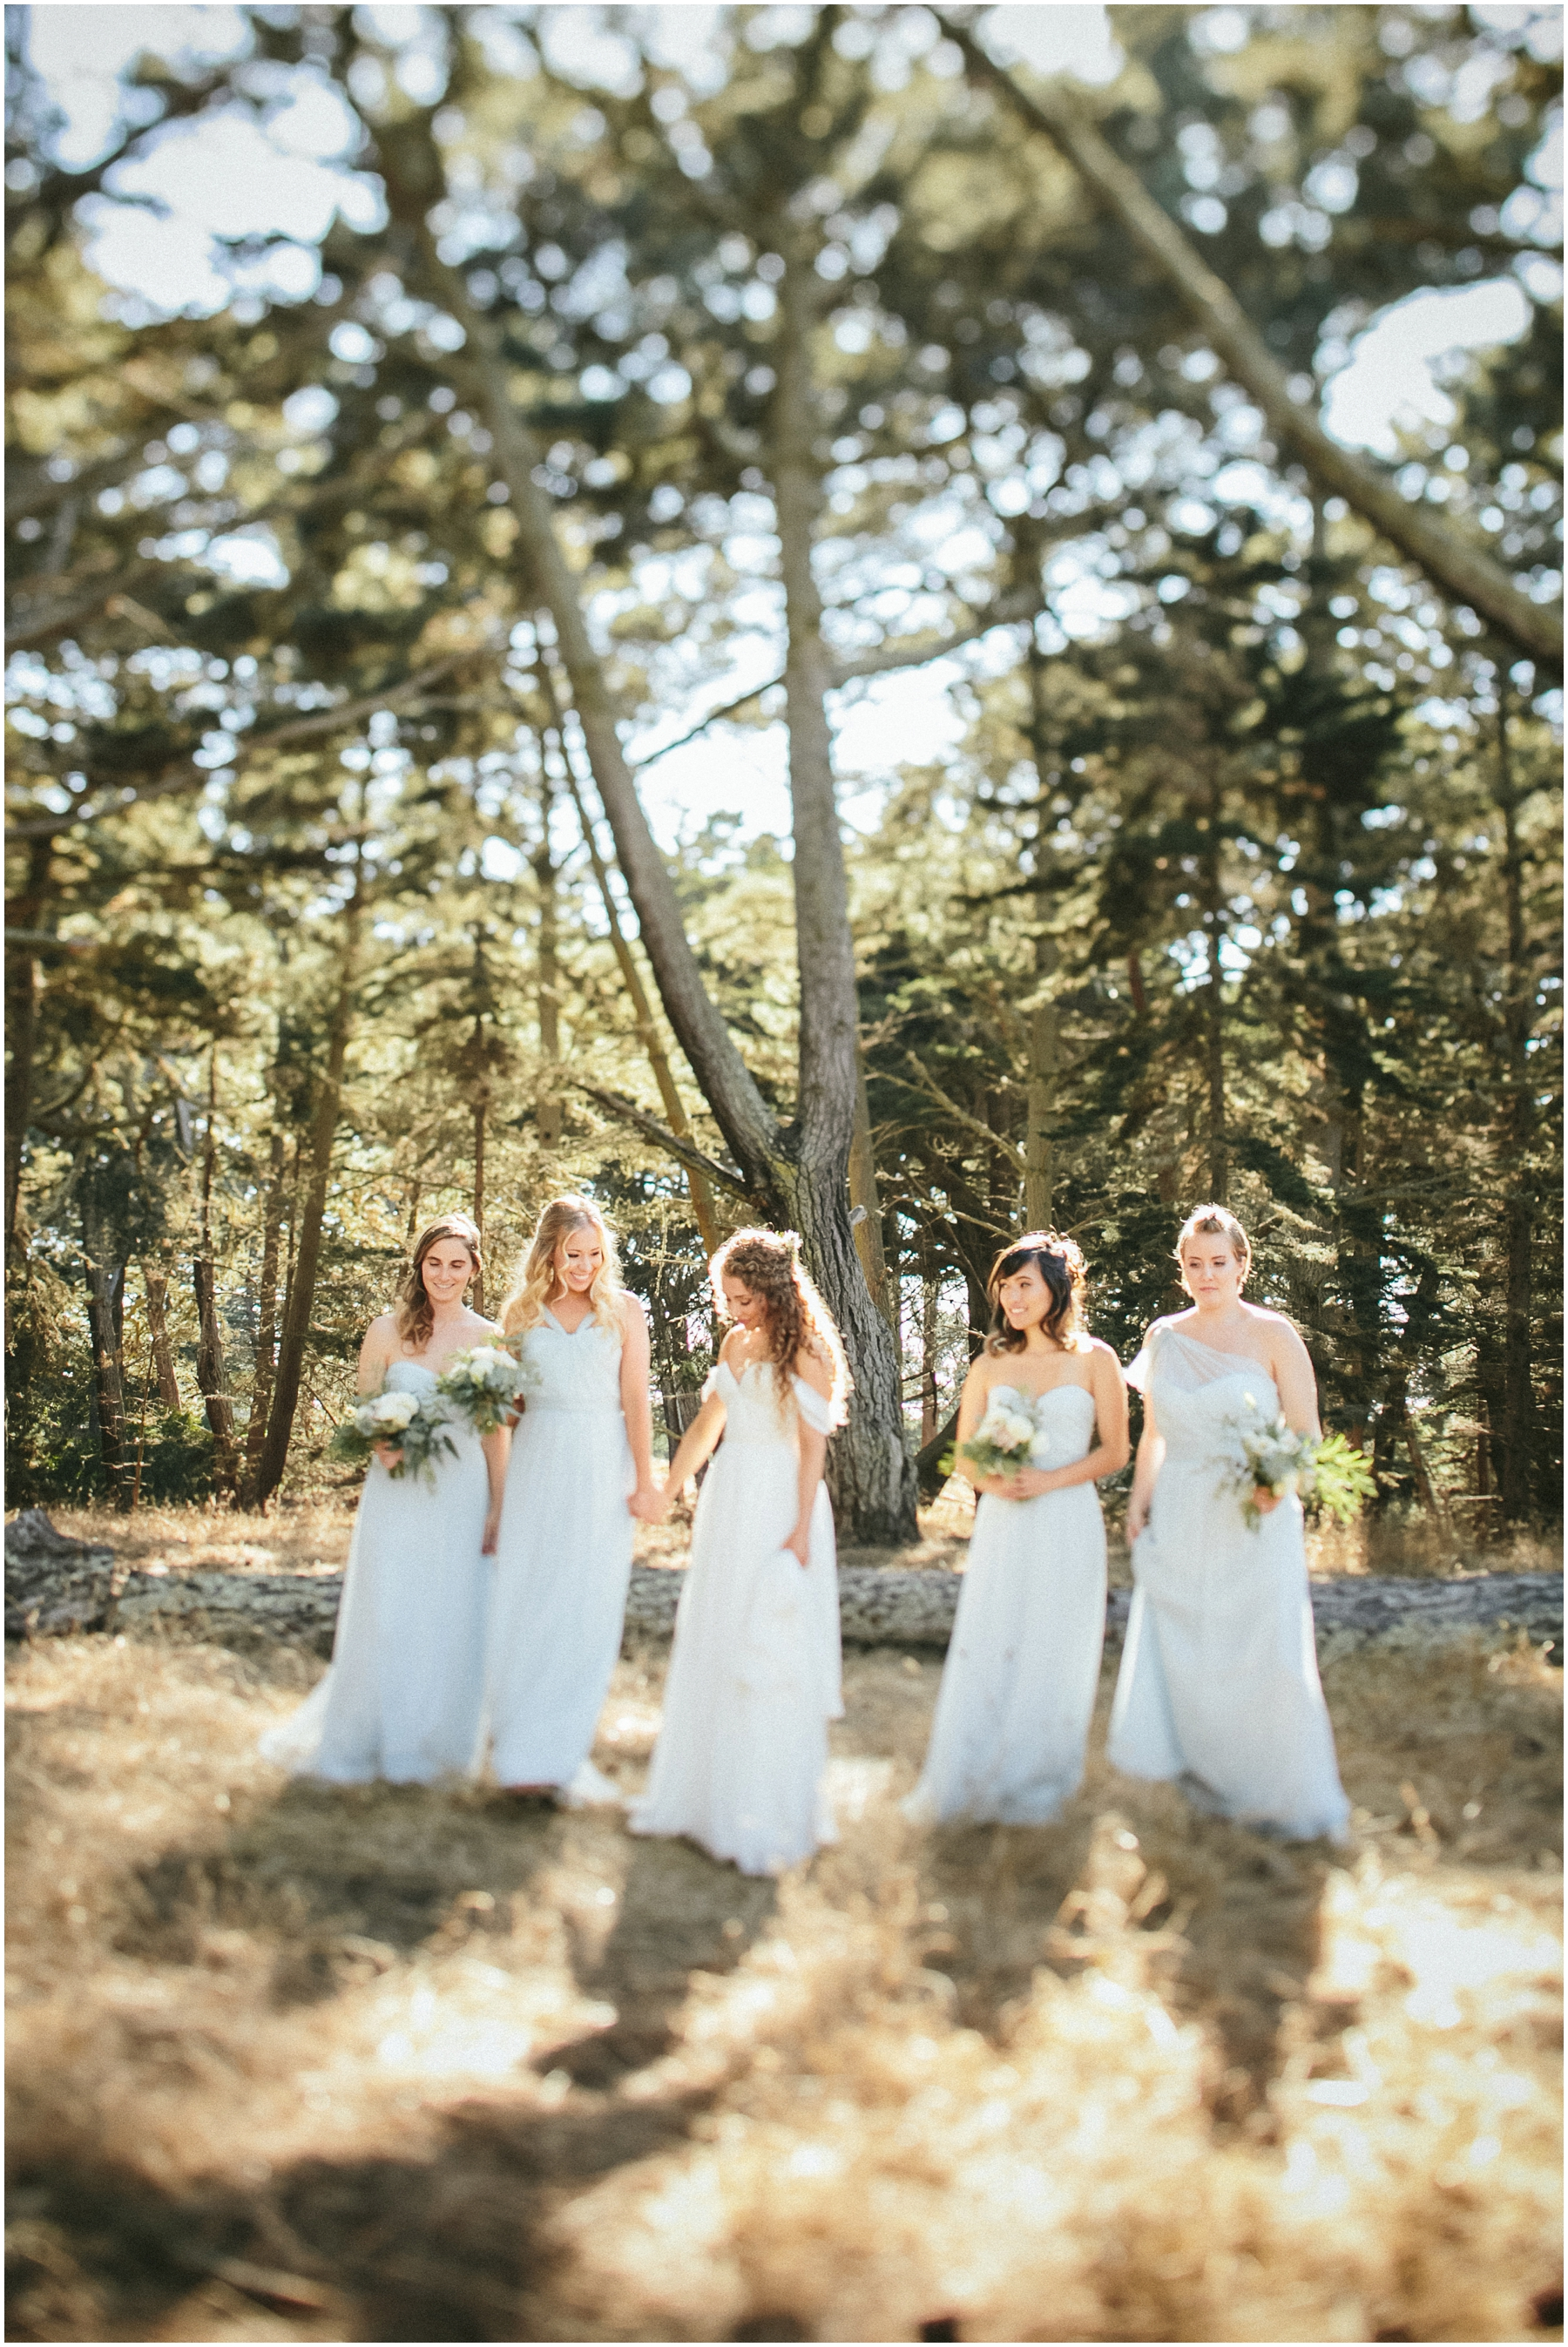 Emily+Paul-WEDDING_KellyBoitanoPhotography_0067